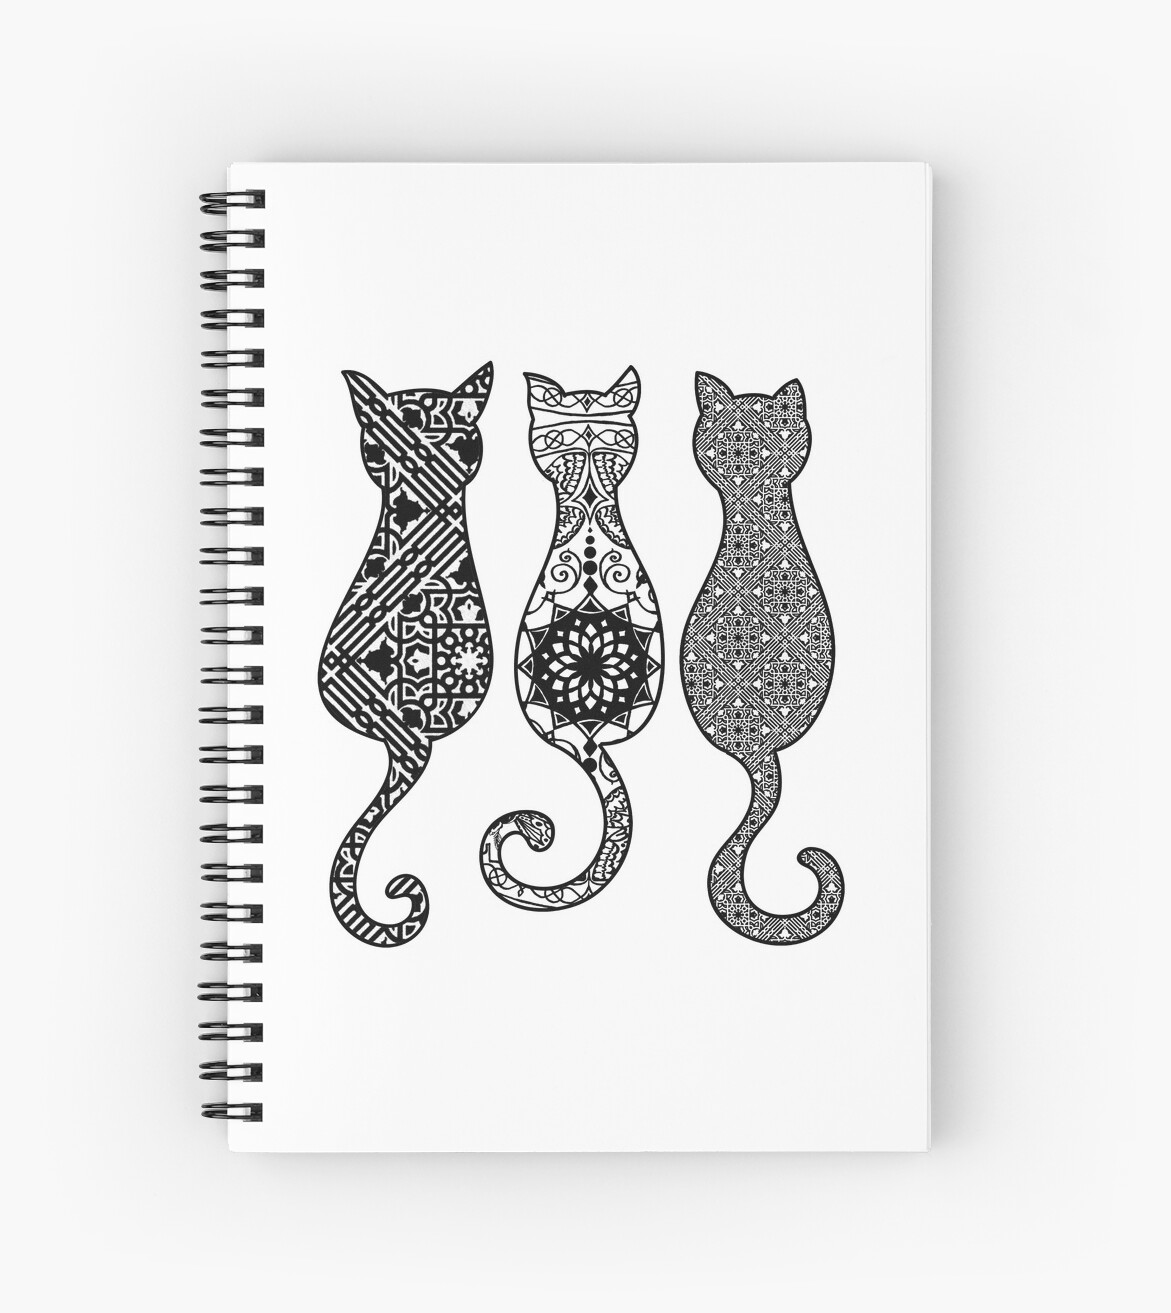 Geometric Cats by Bothaina